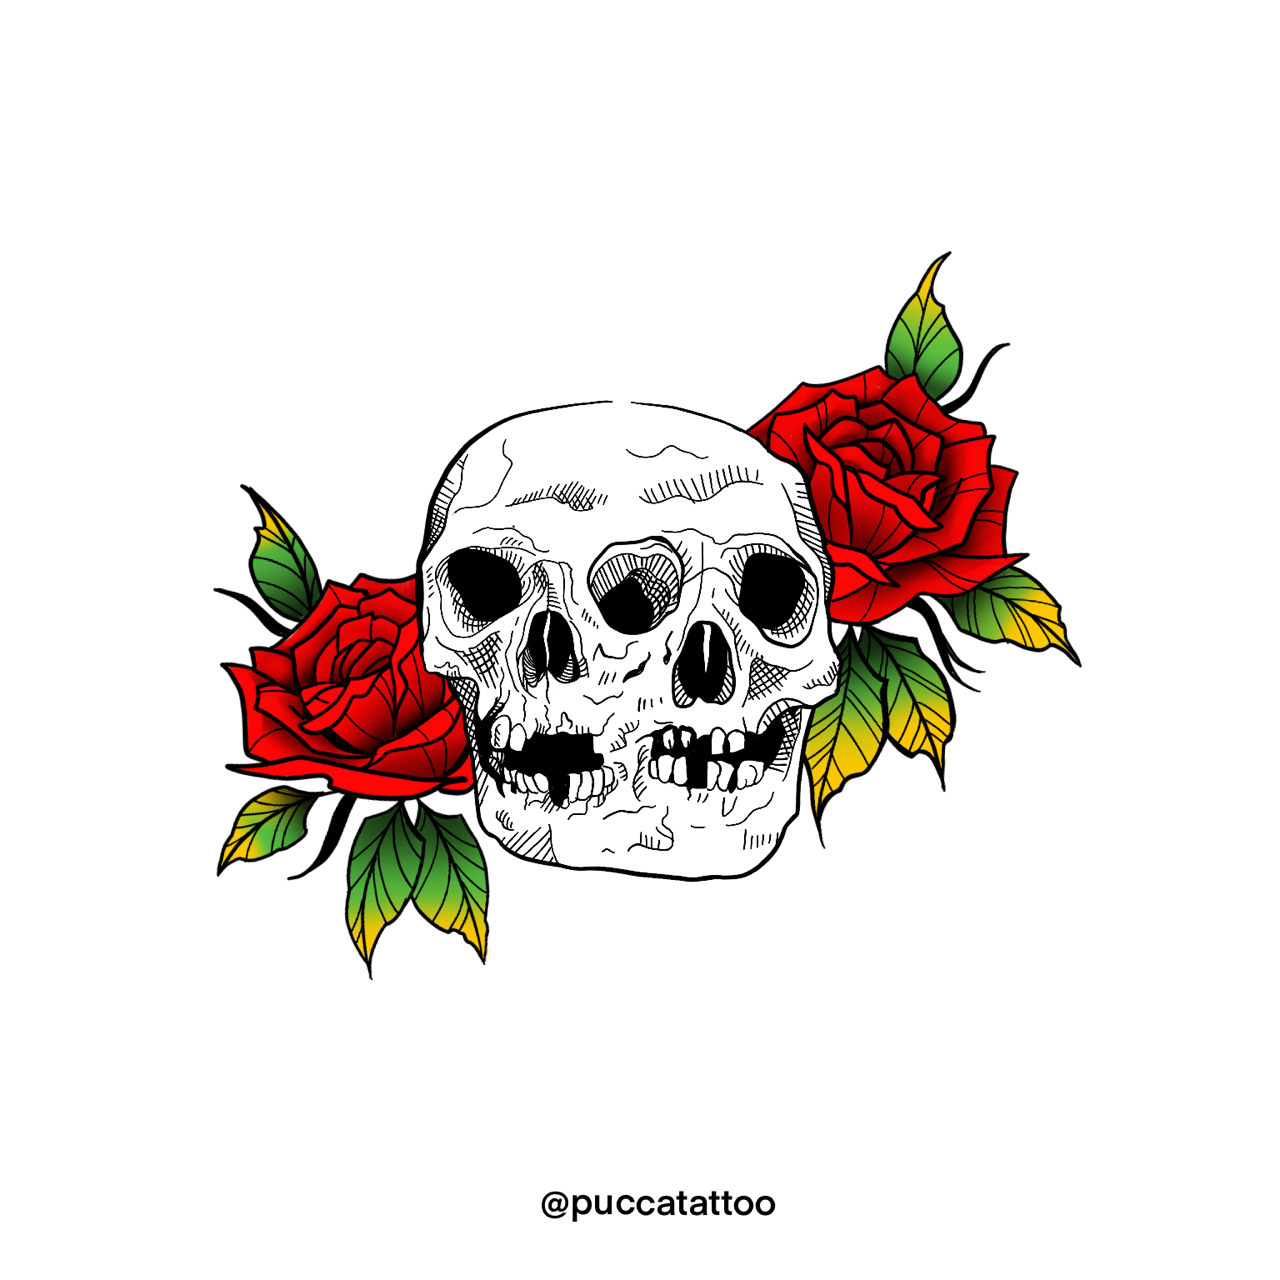 [For Hire] Recent tattoo design I have worked on for a cliente! Any thoughts? Comissions open!